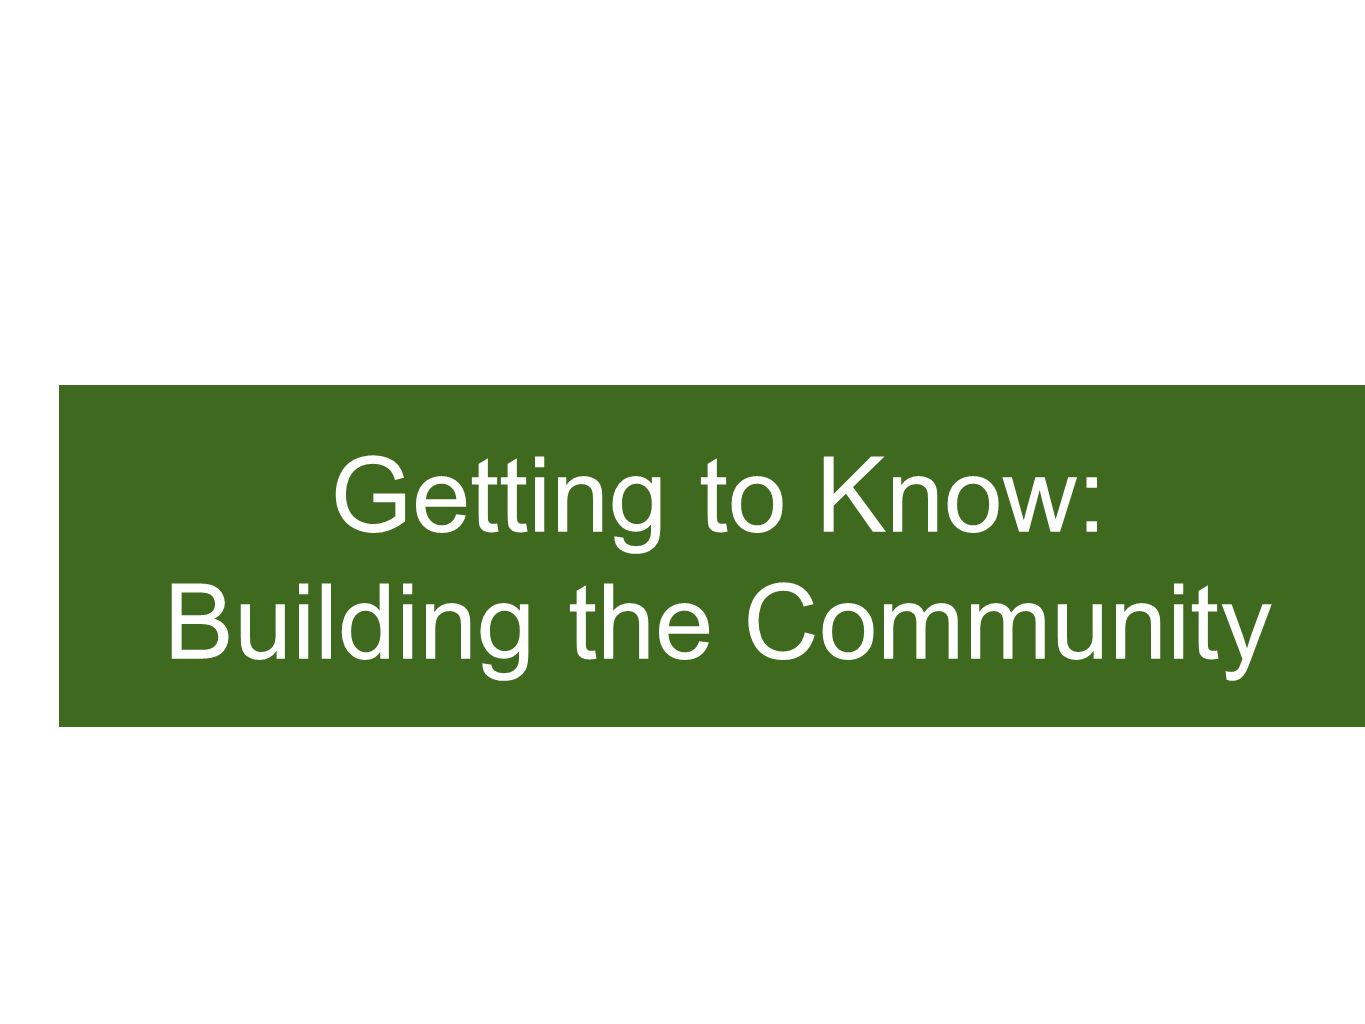 Getting to Know: Building the Community